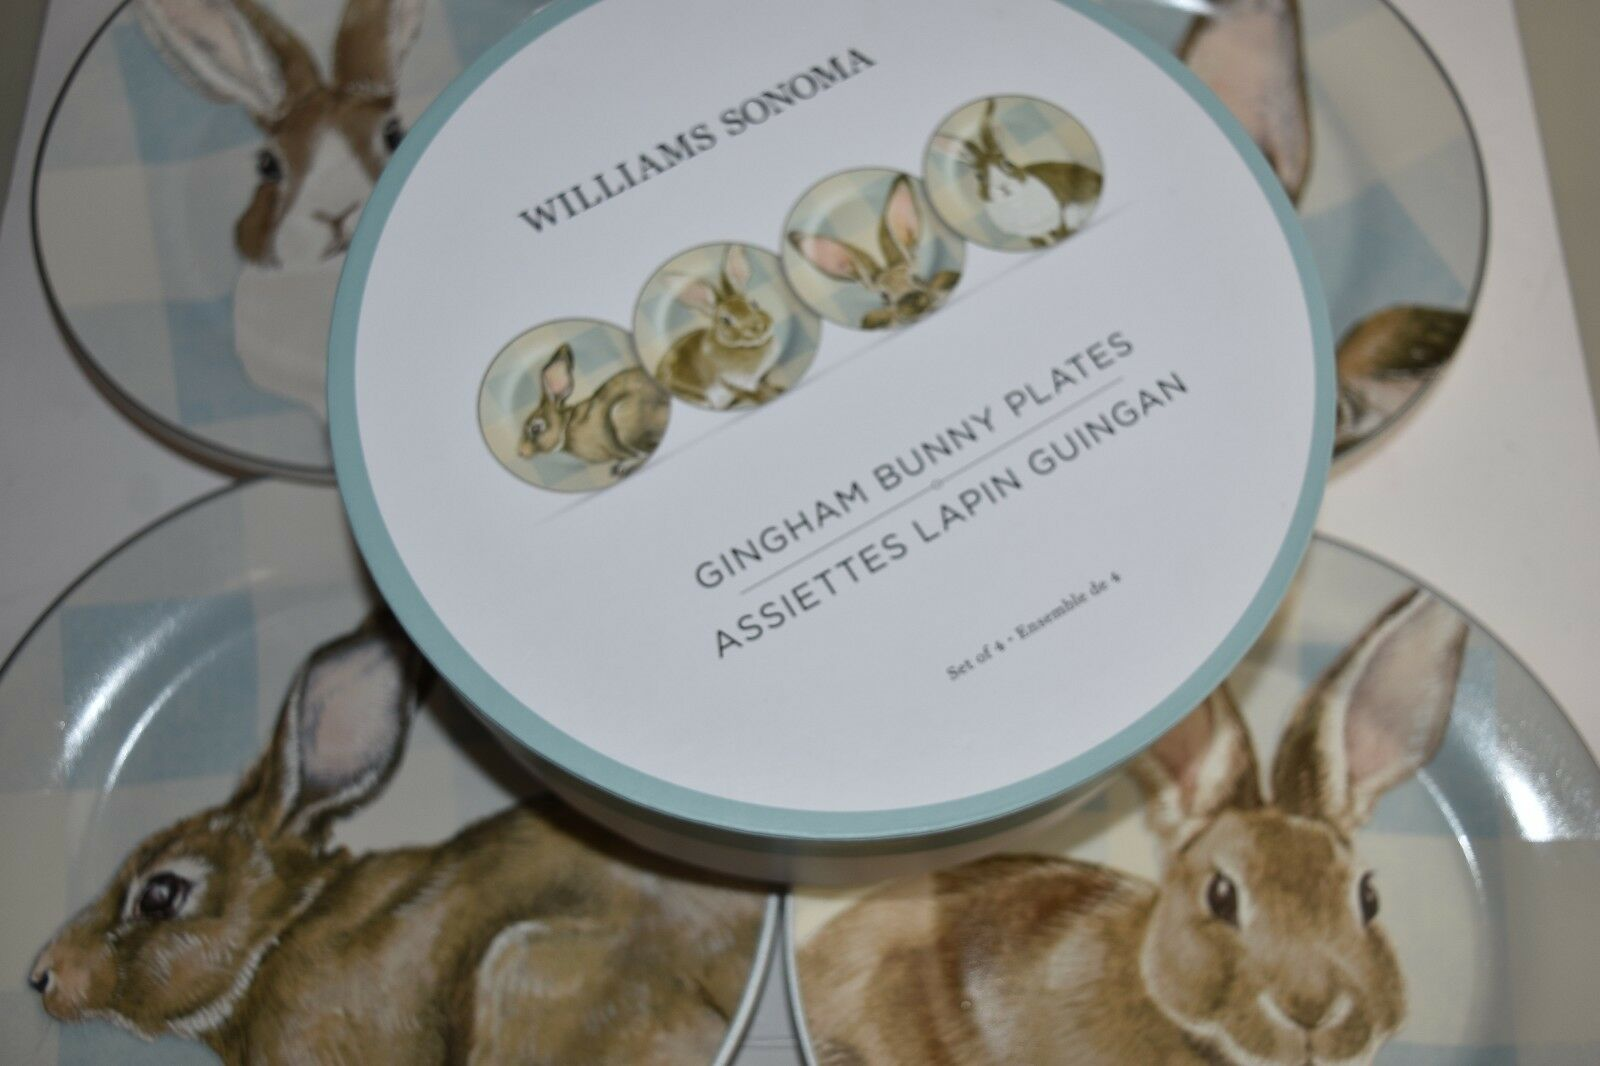 nouveau in BOX Williams Sonoma Gingham Bunny Salad Plates 4 PC blanc bleu EASTER